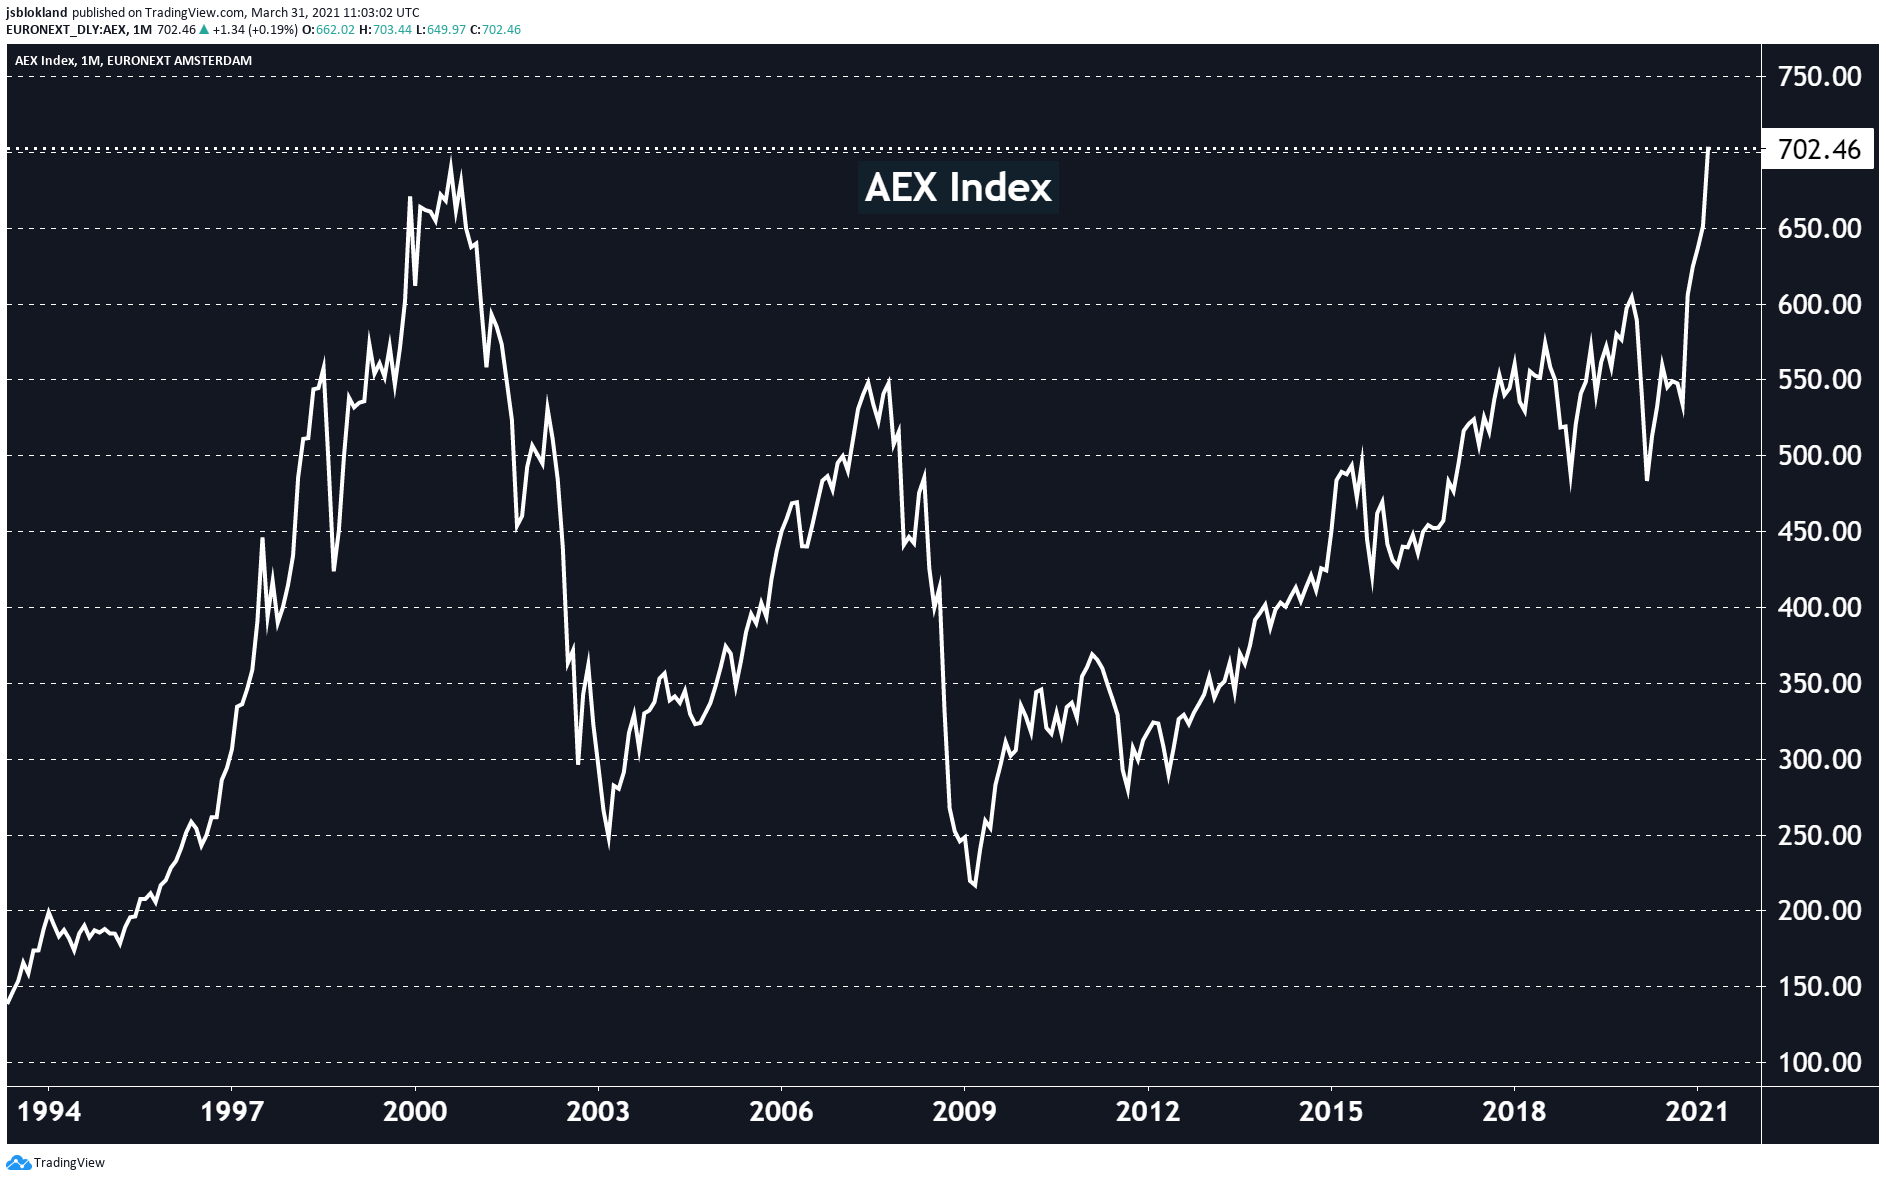 20-year high for the Dutch AEX Index !